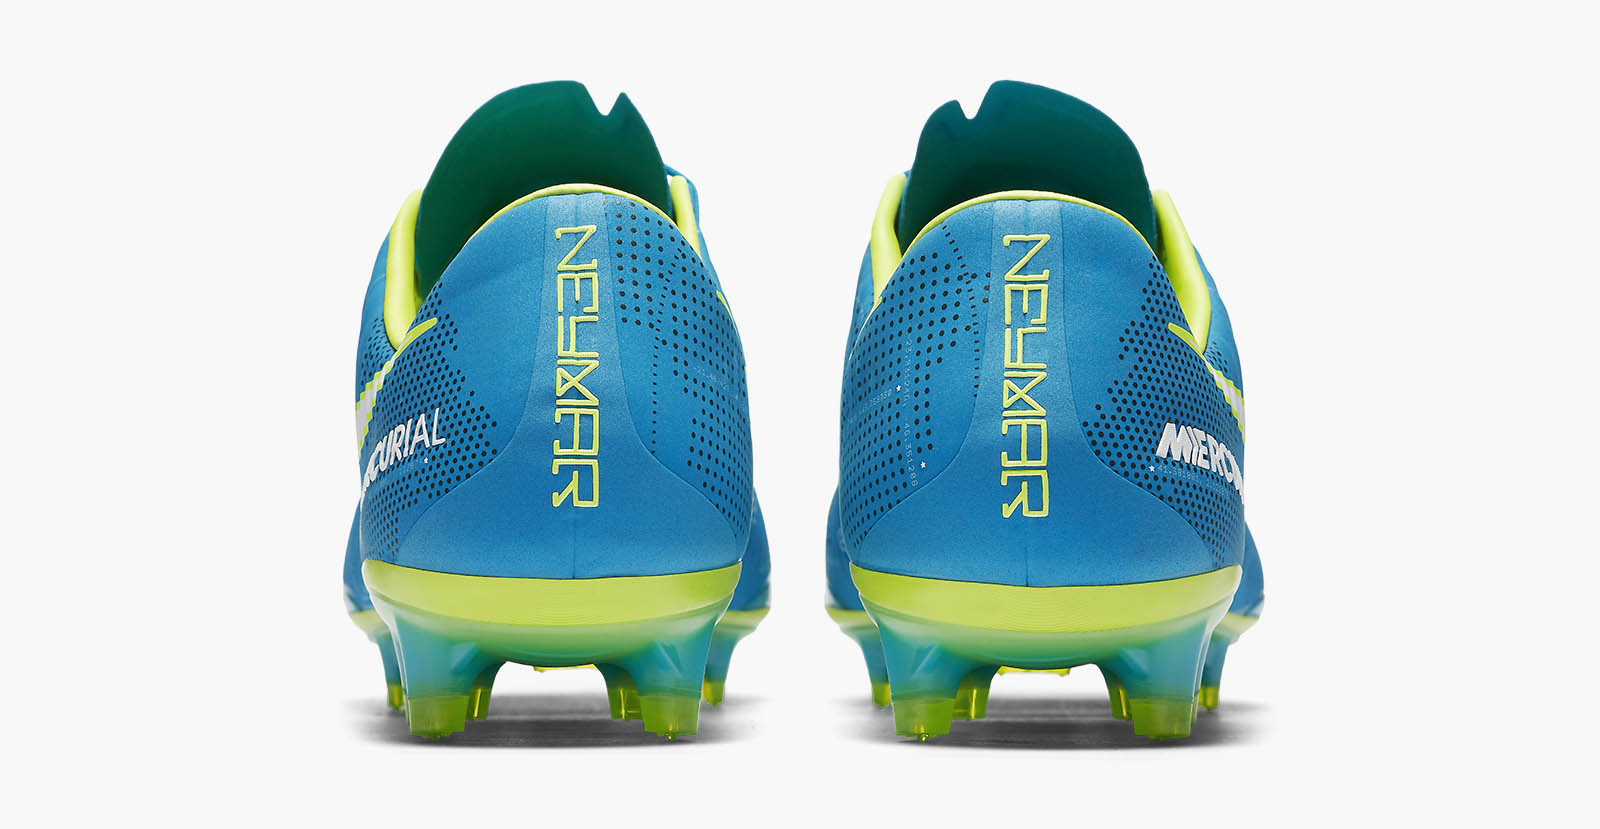 teal nike soccer cleats nike football trainers price